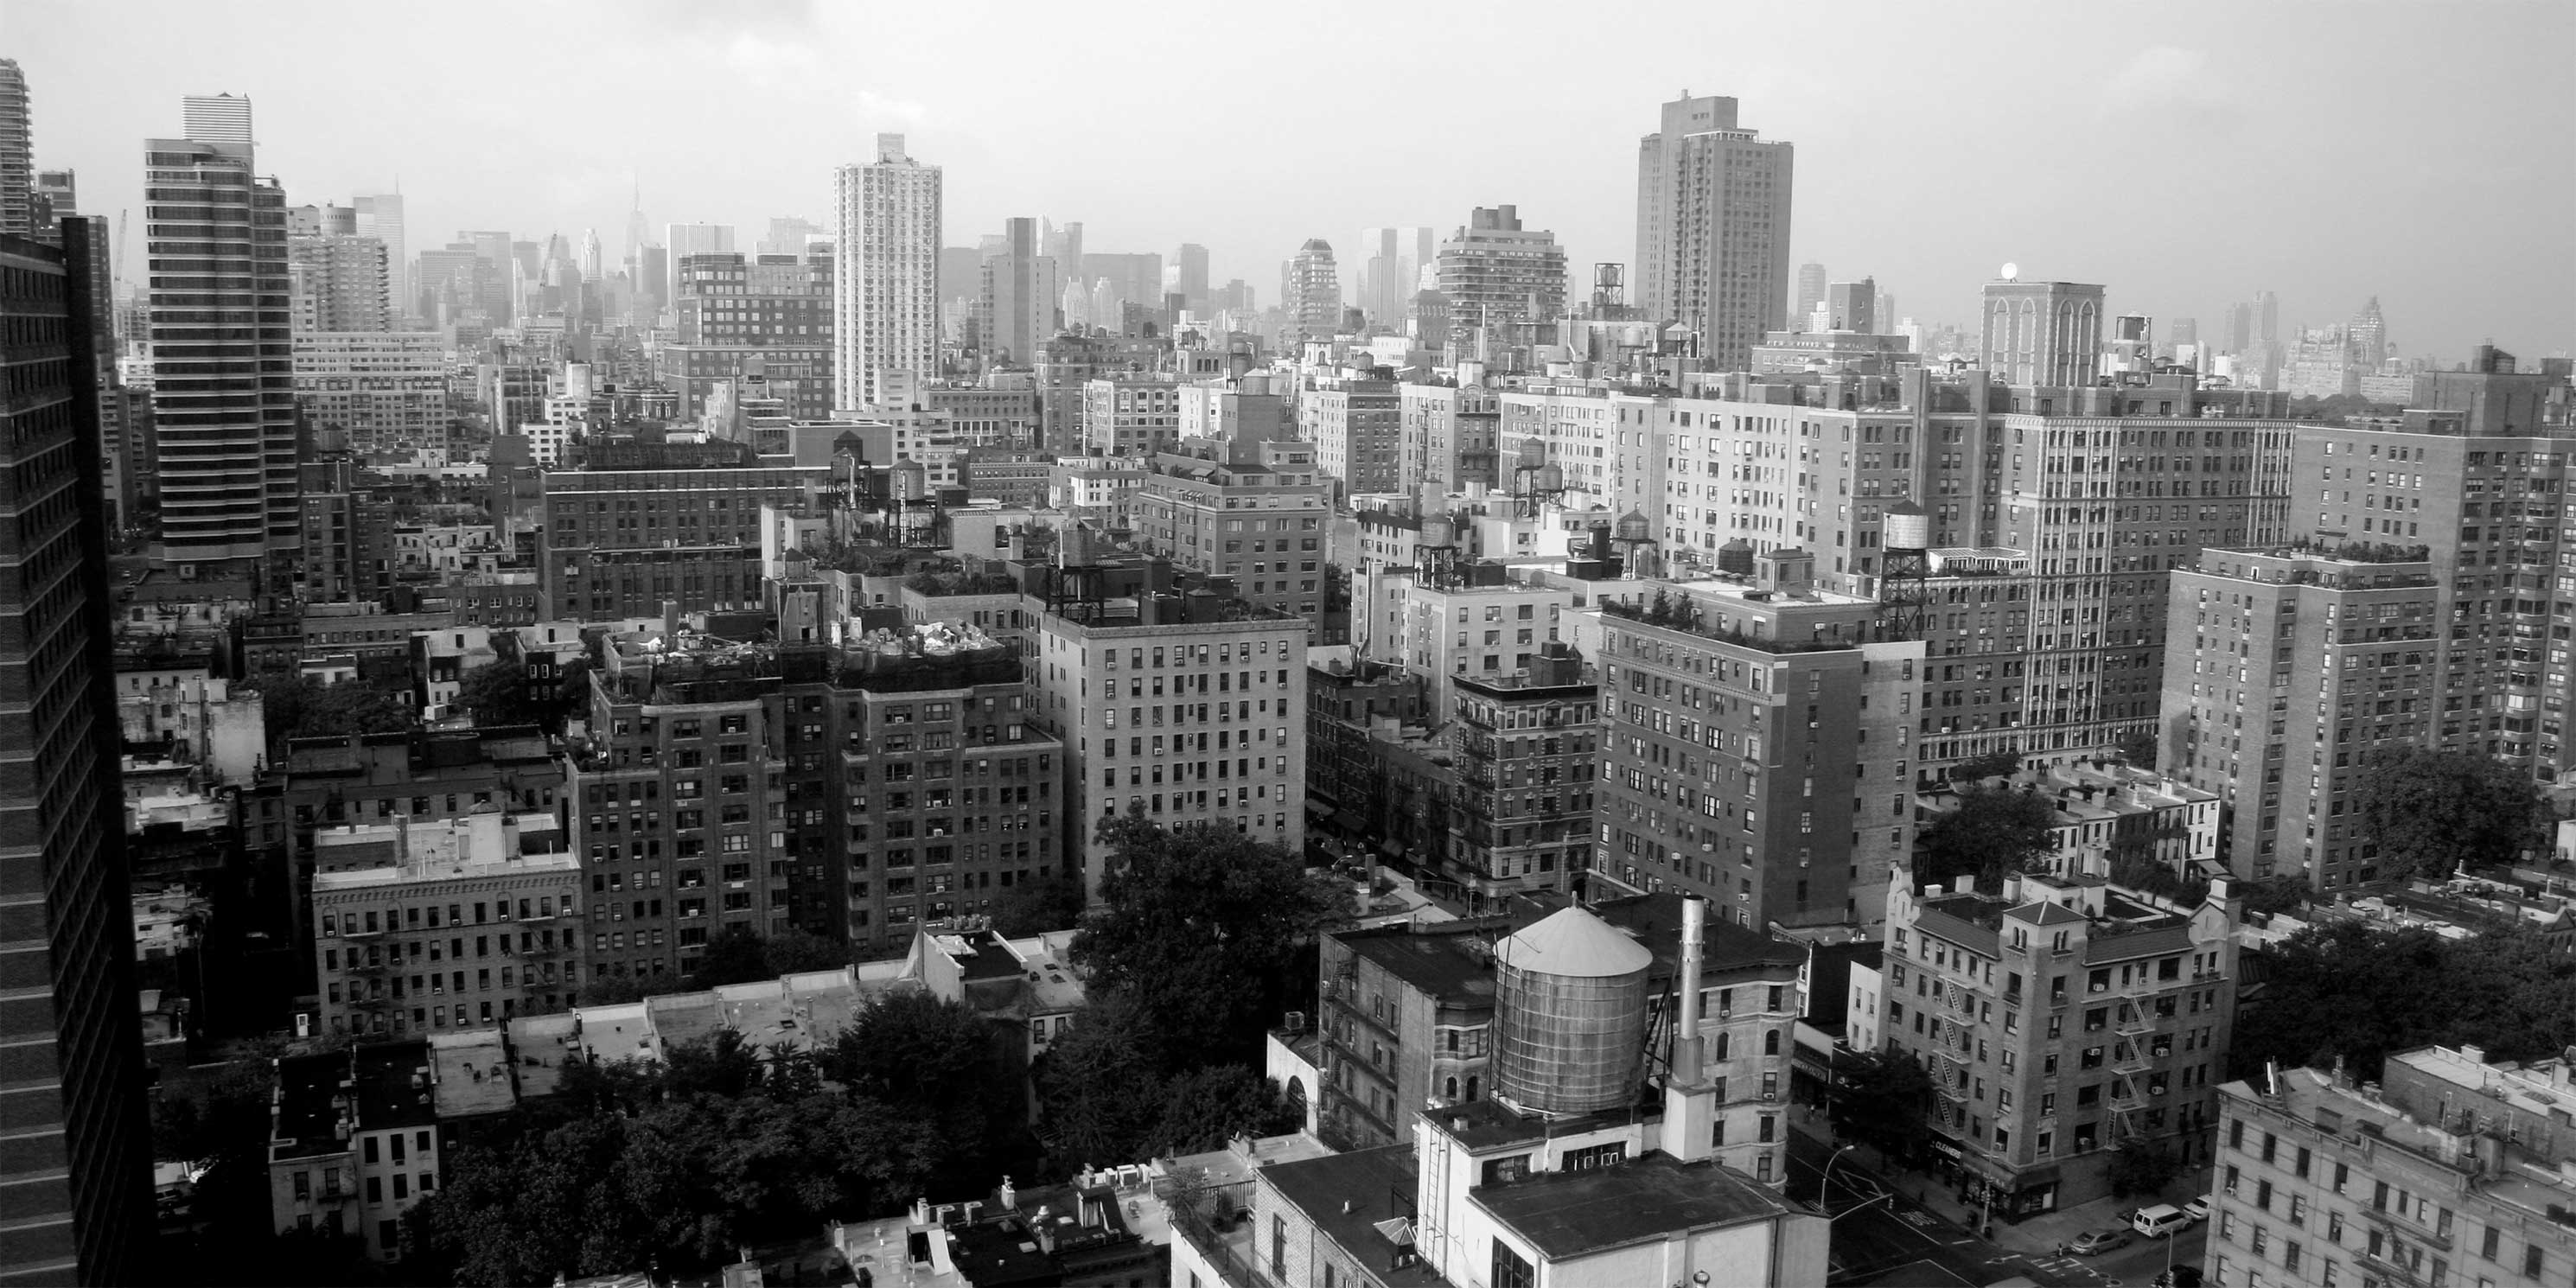 Buildings of the Upper East Side as seen from a high floor